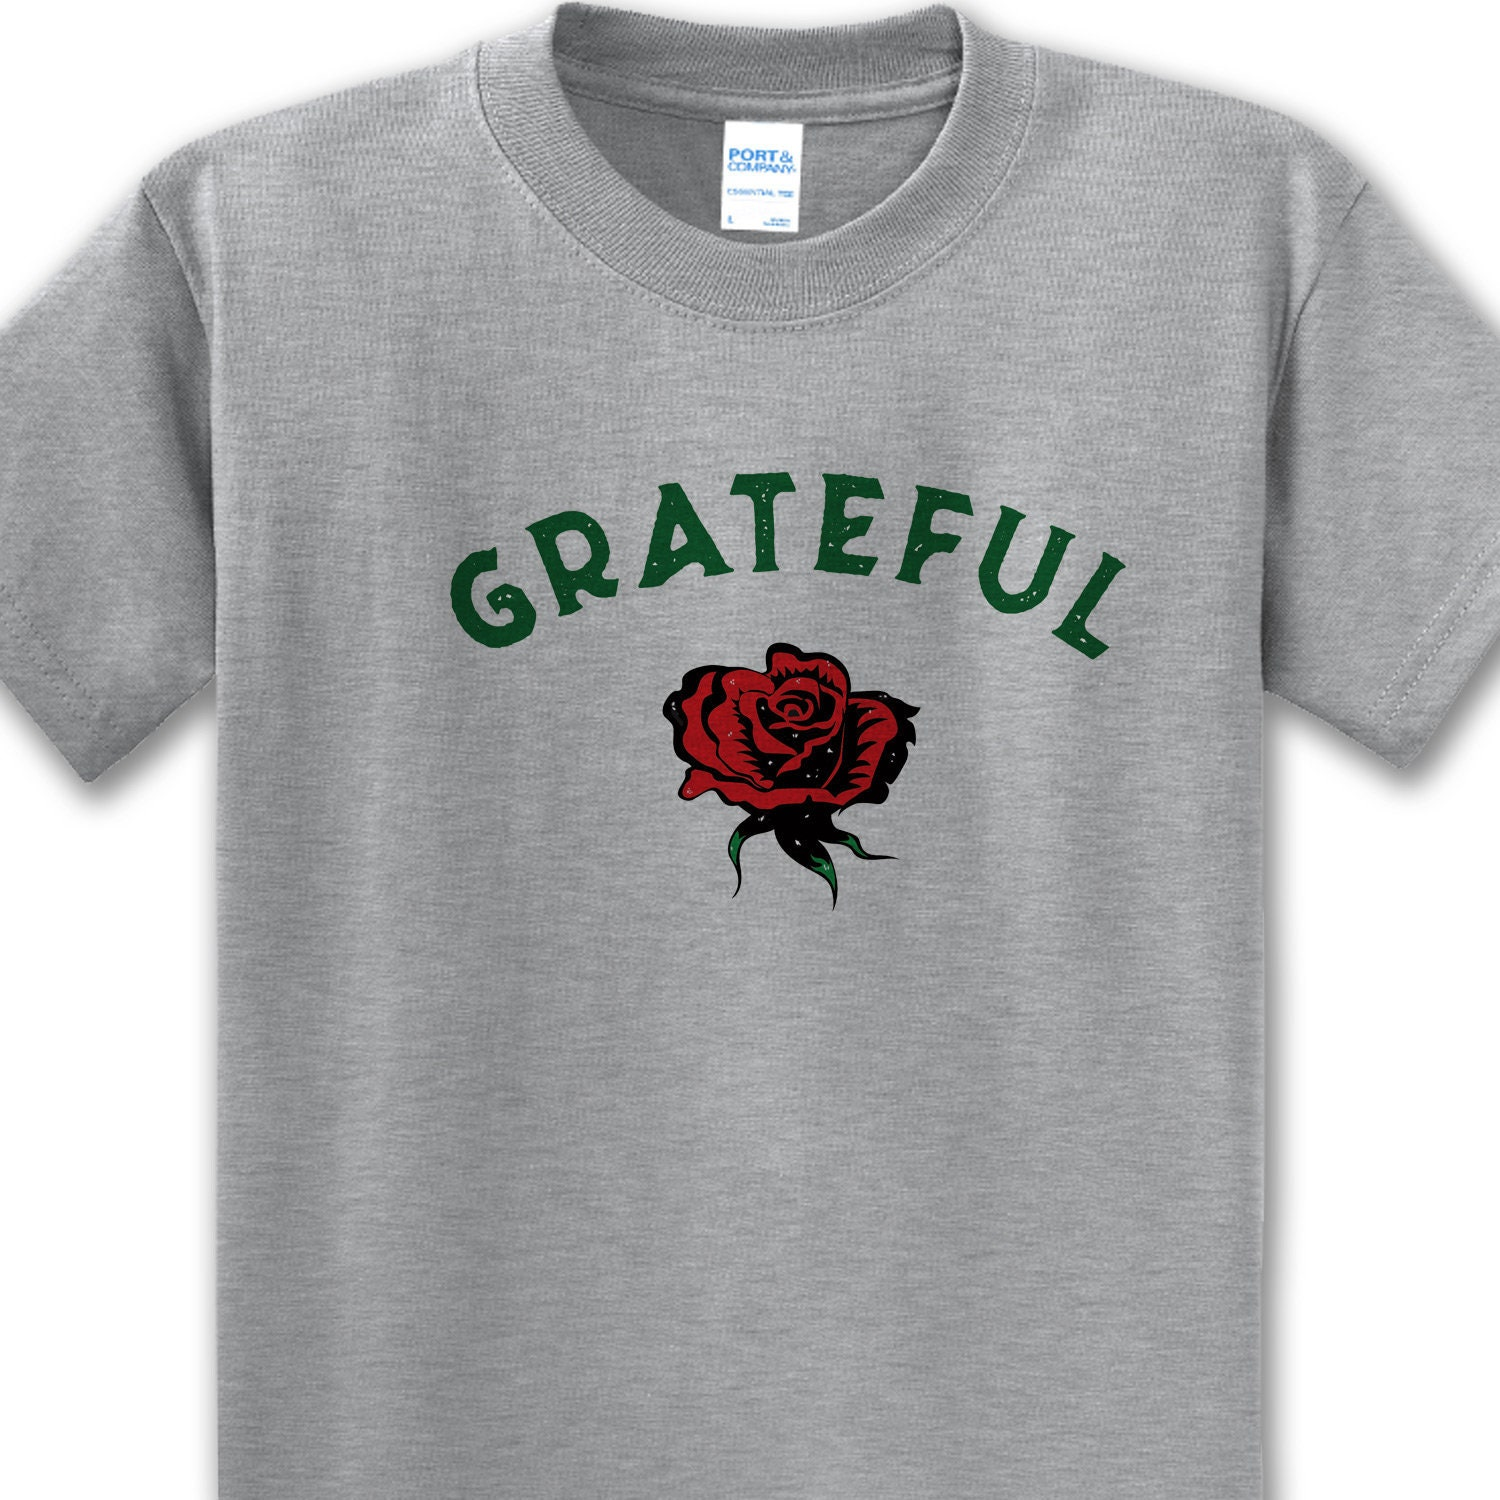 d387a3b1 Grateful Rose T-shirt Men's and Ladies All Sizes & | Etsy